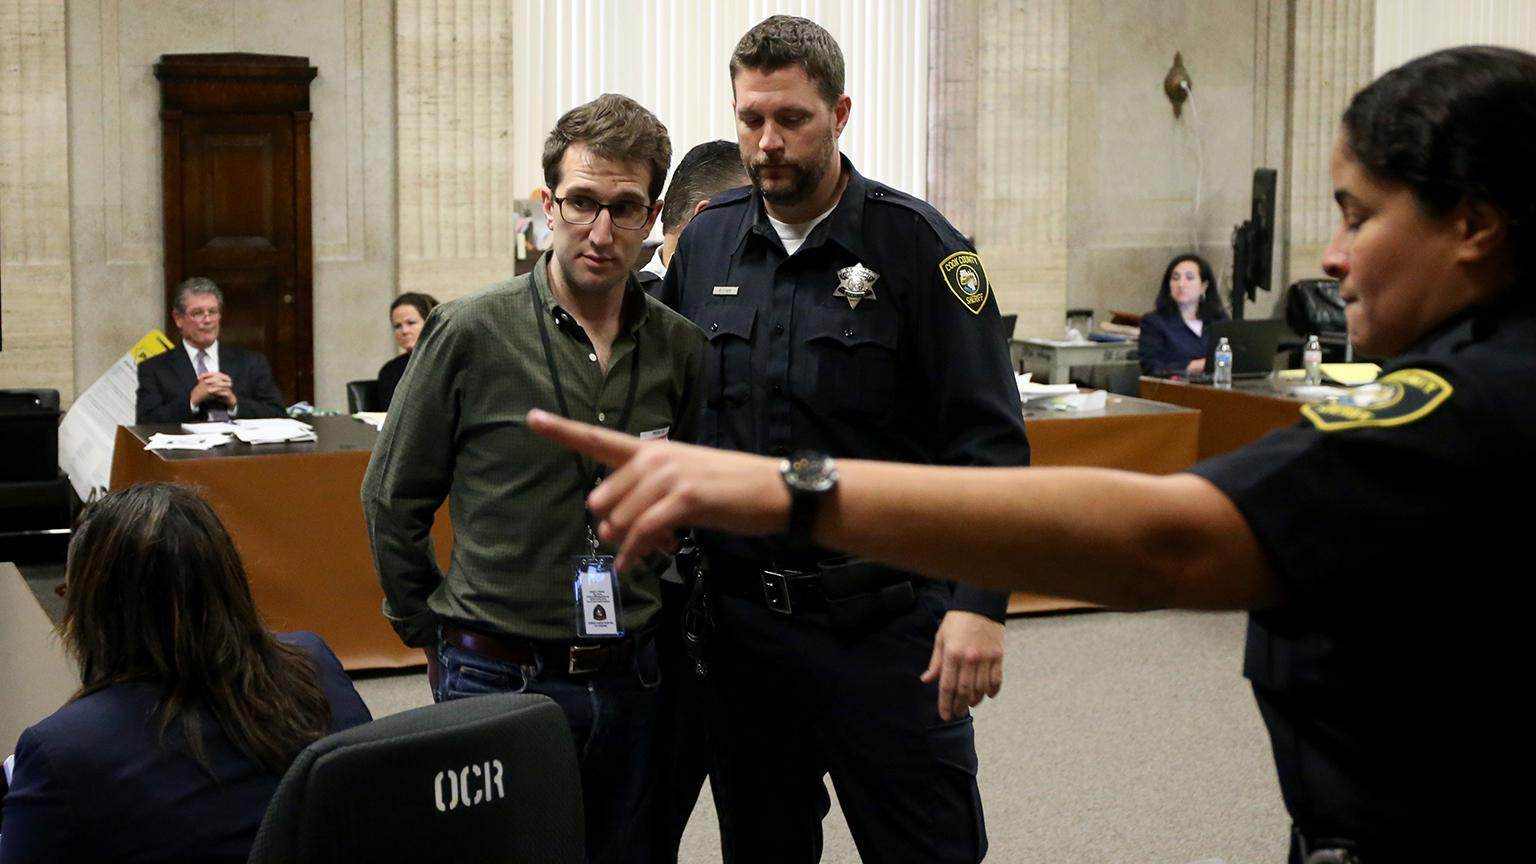 Zachary Siegel is taken into custody for recording testimony Tuesday, Oct. 2, 2018 in the courtroom. Antonio Perez / Chicago Tribune / Pool)